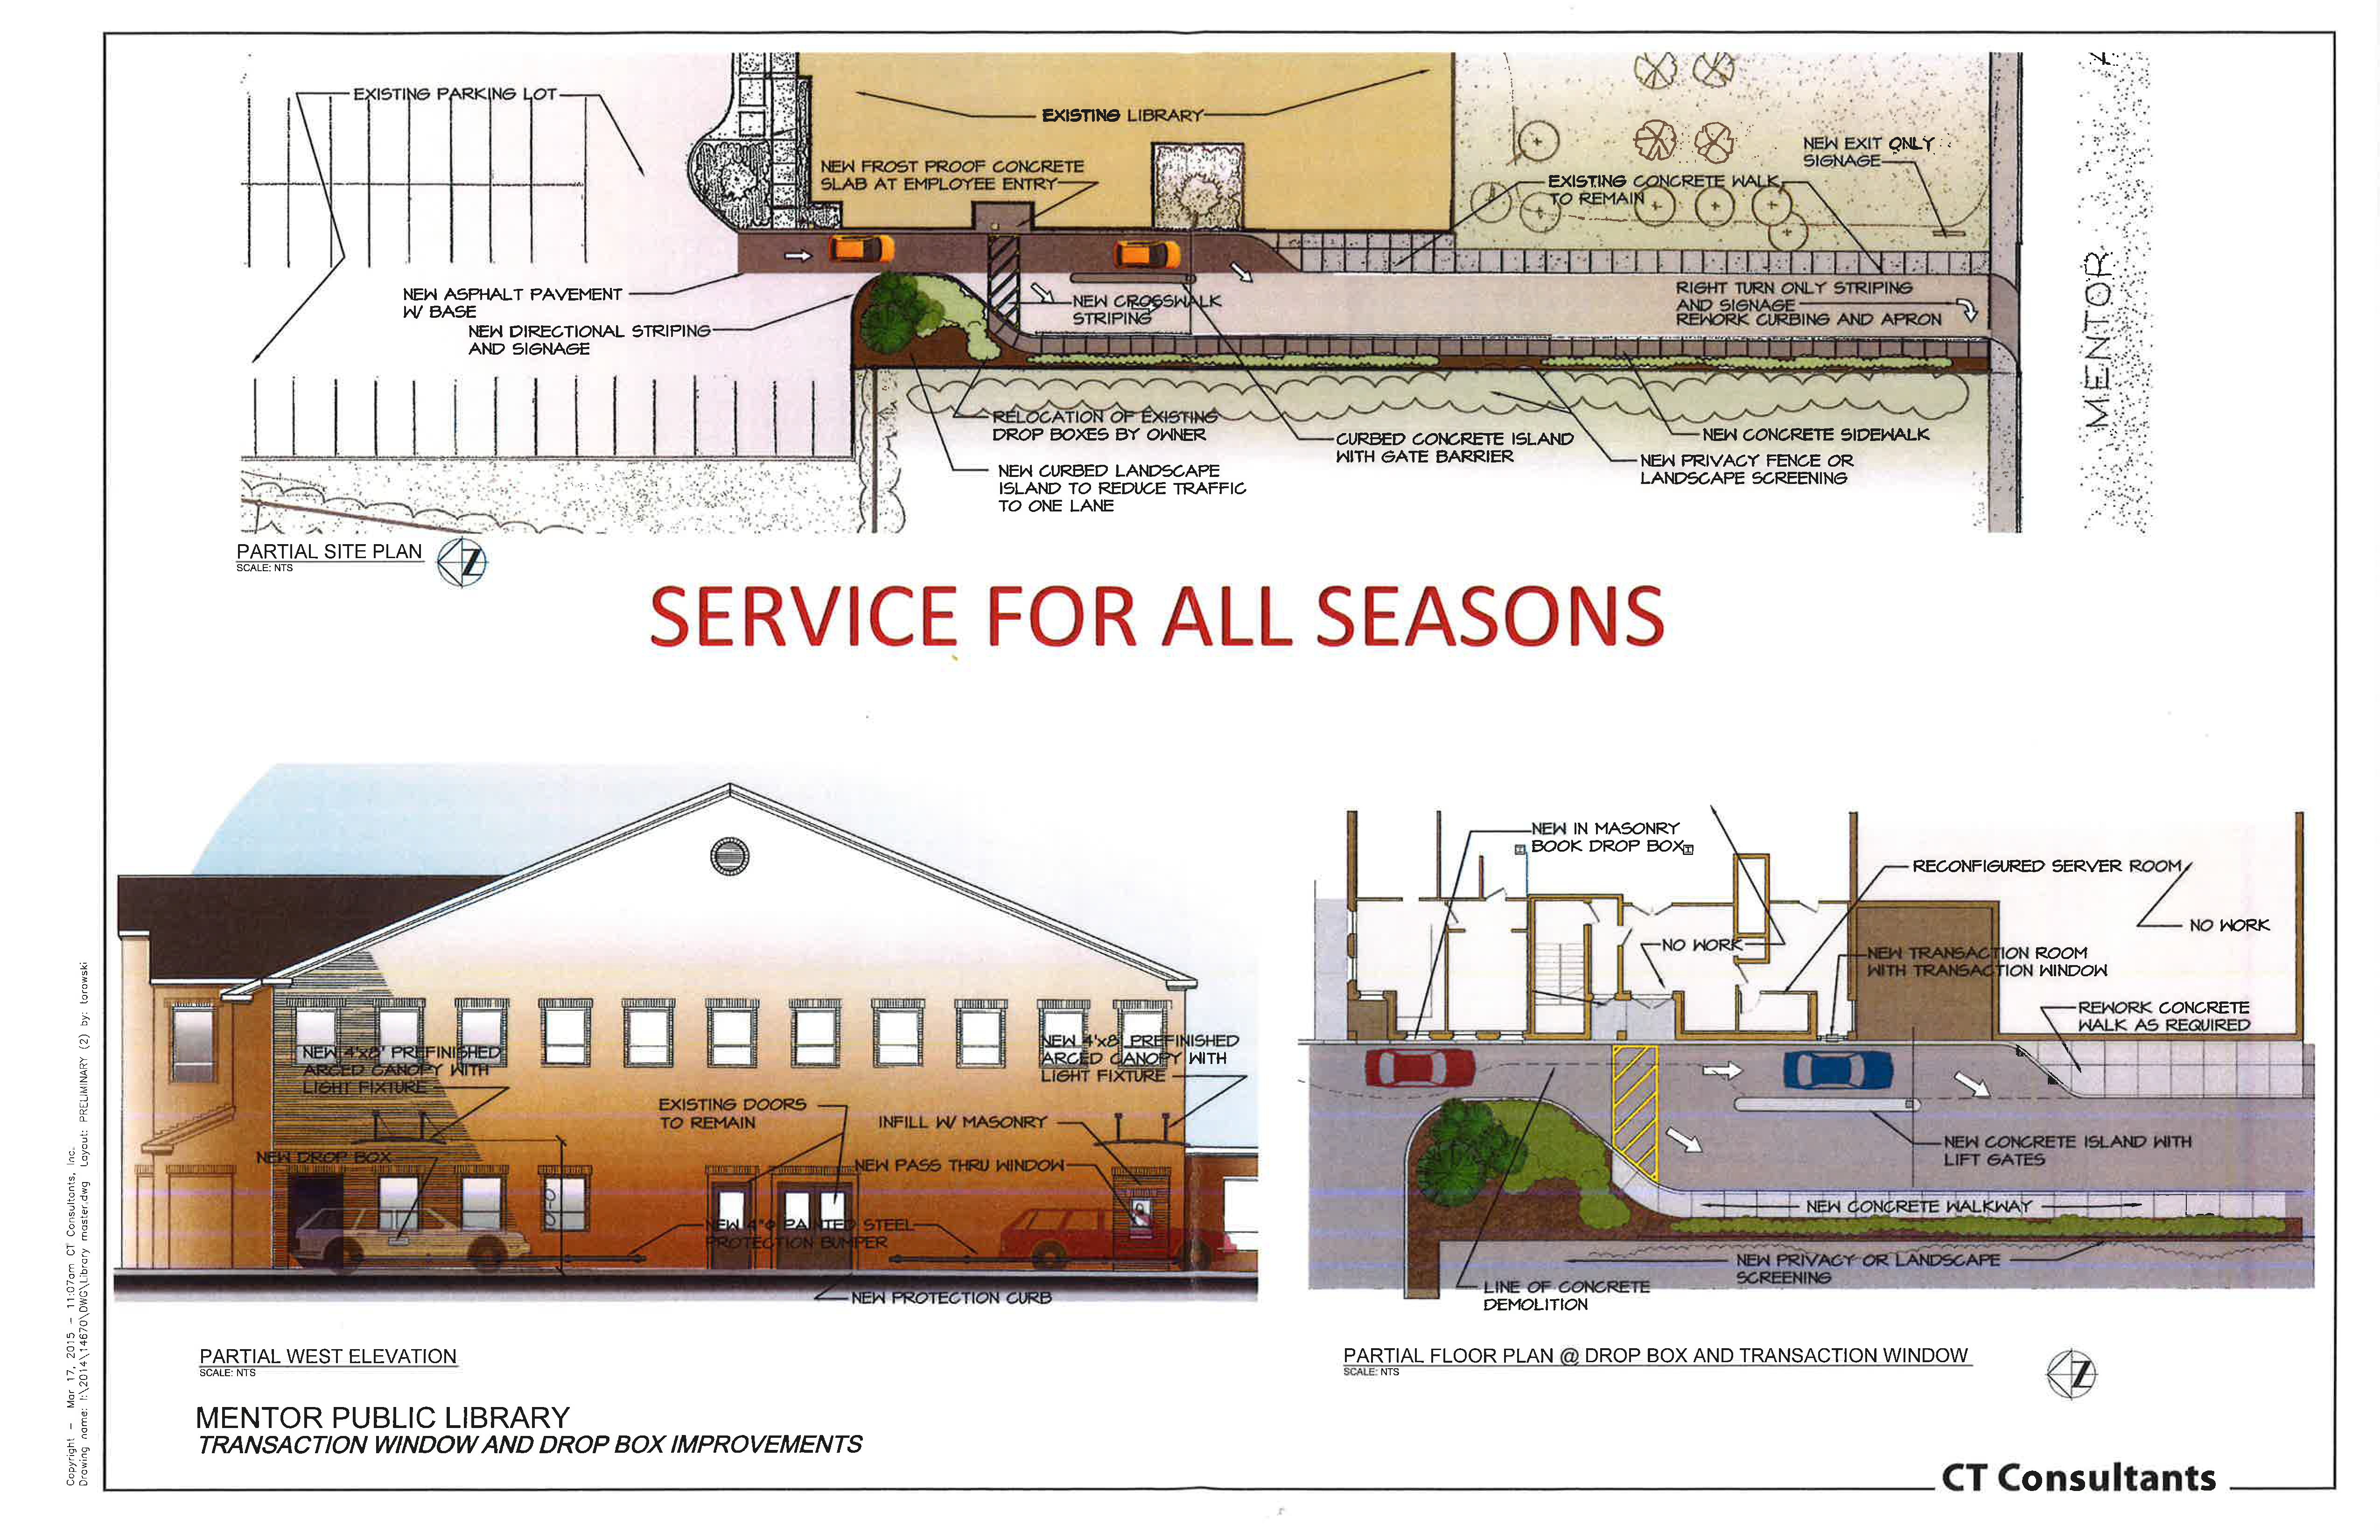 Construction will begin April 4 on the new drive-thru at our Main Branch.